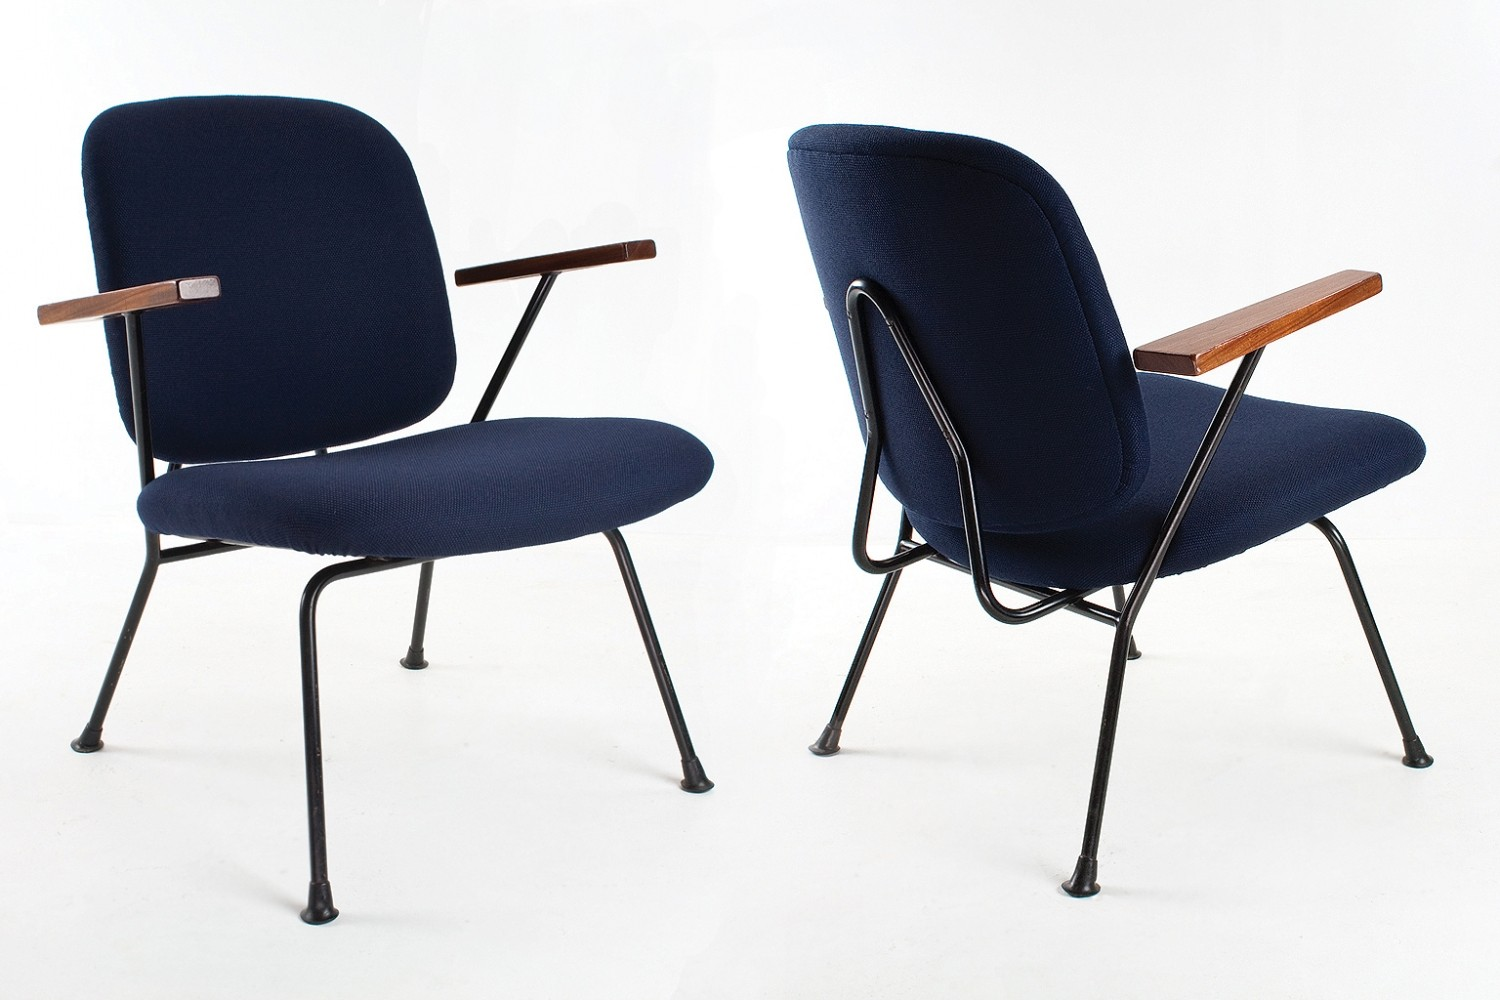 4 lounge chairs from the fifties by W. Gispen for Kembo